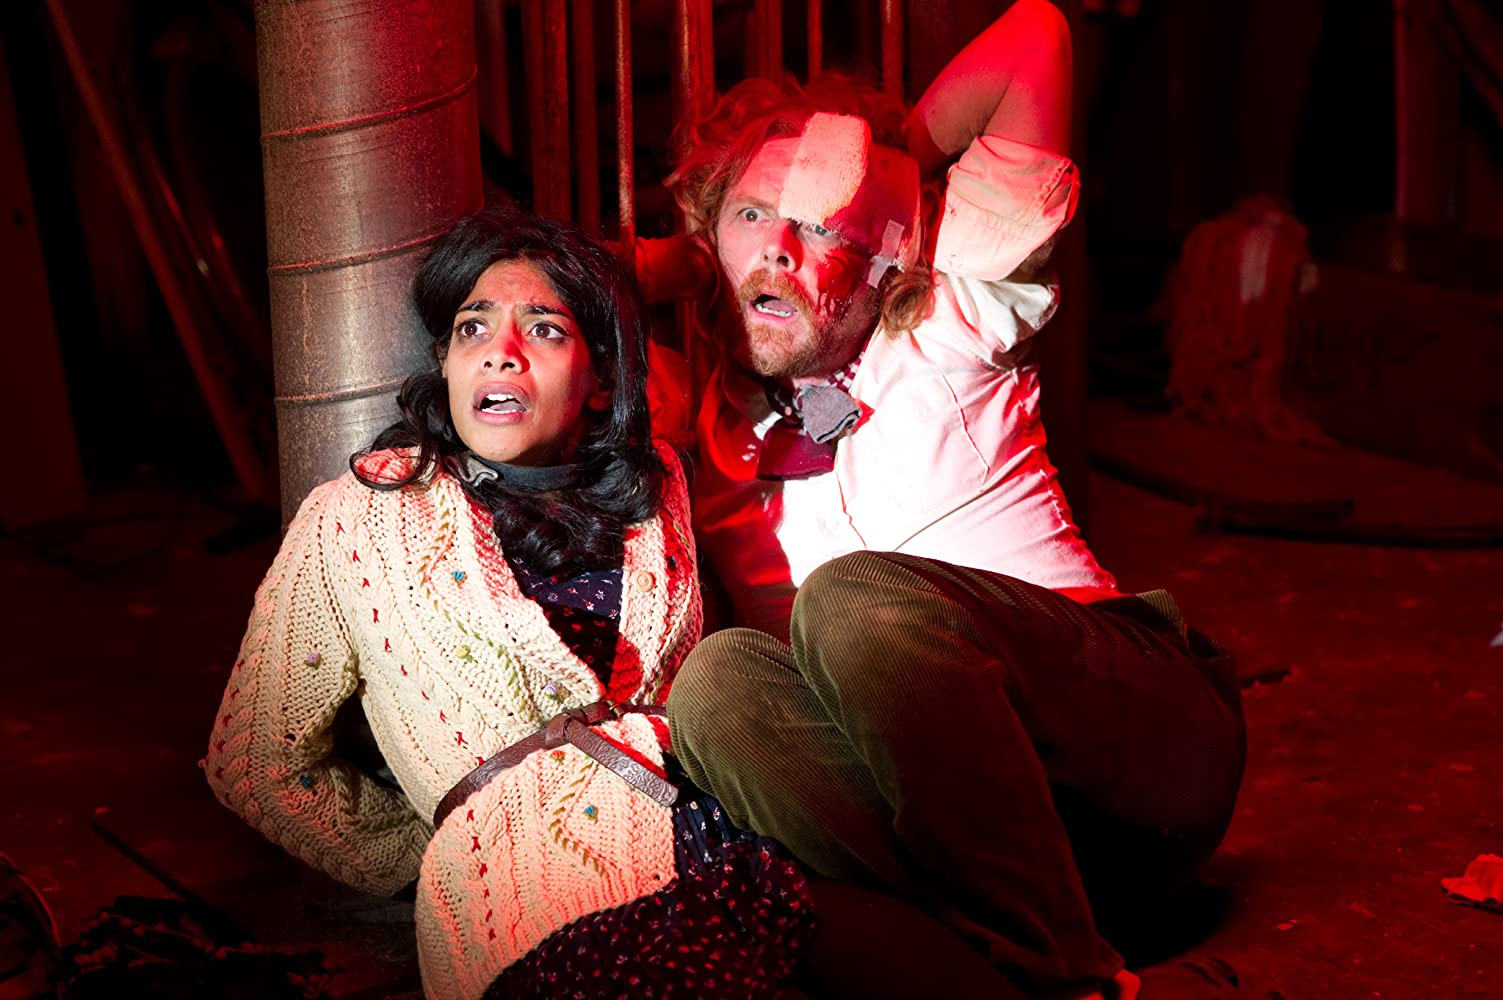 Simon Pegg and Amara Karan in A Fantastic Fear of Everything (2012)